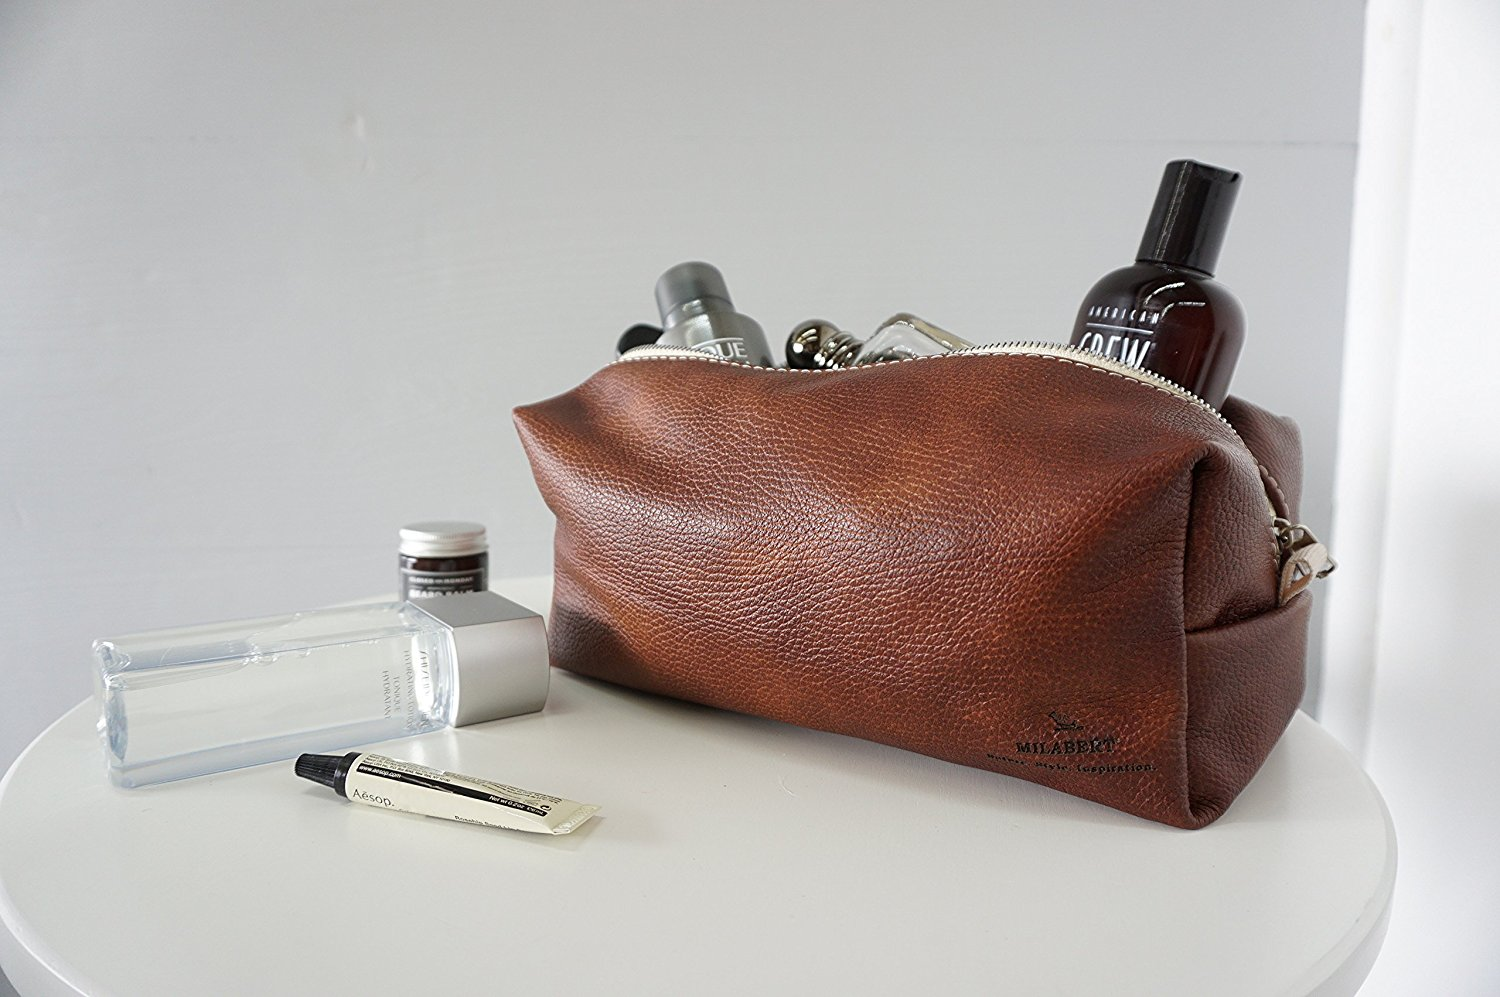 f987ce99c0 Get Quotations · Men s Finest Leather Toiletry Bag